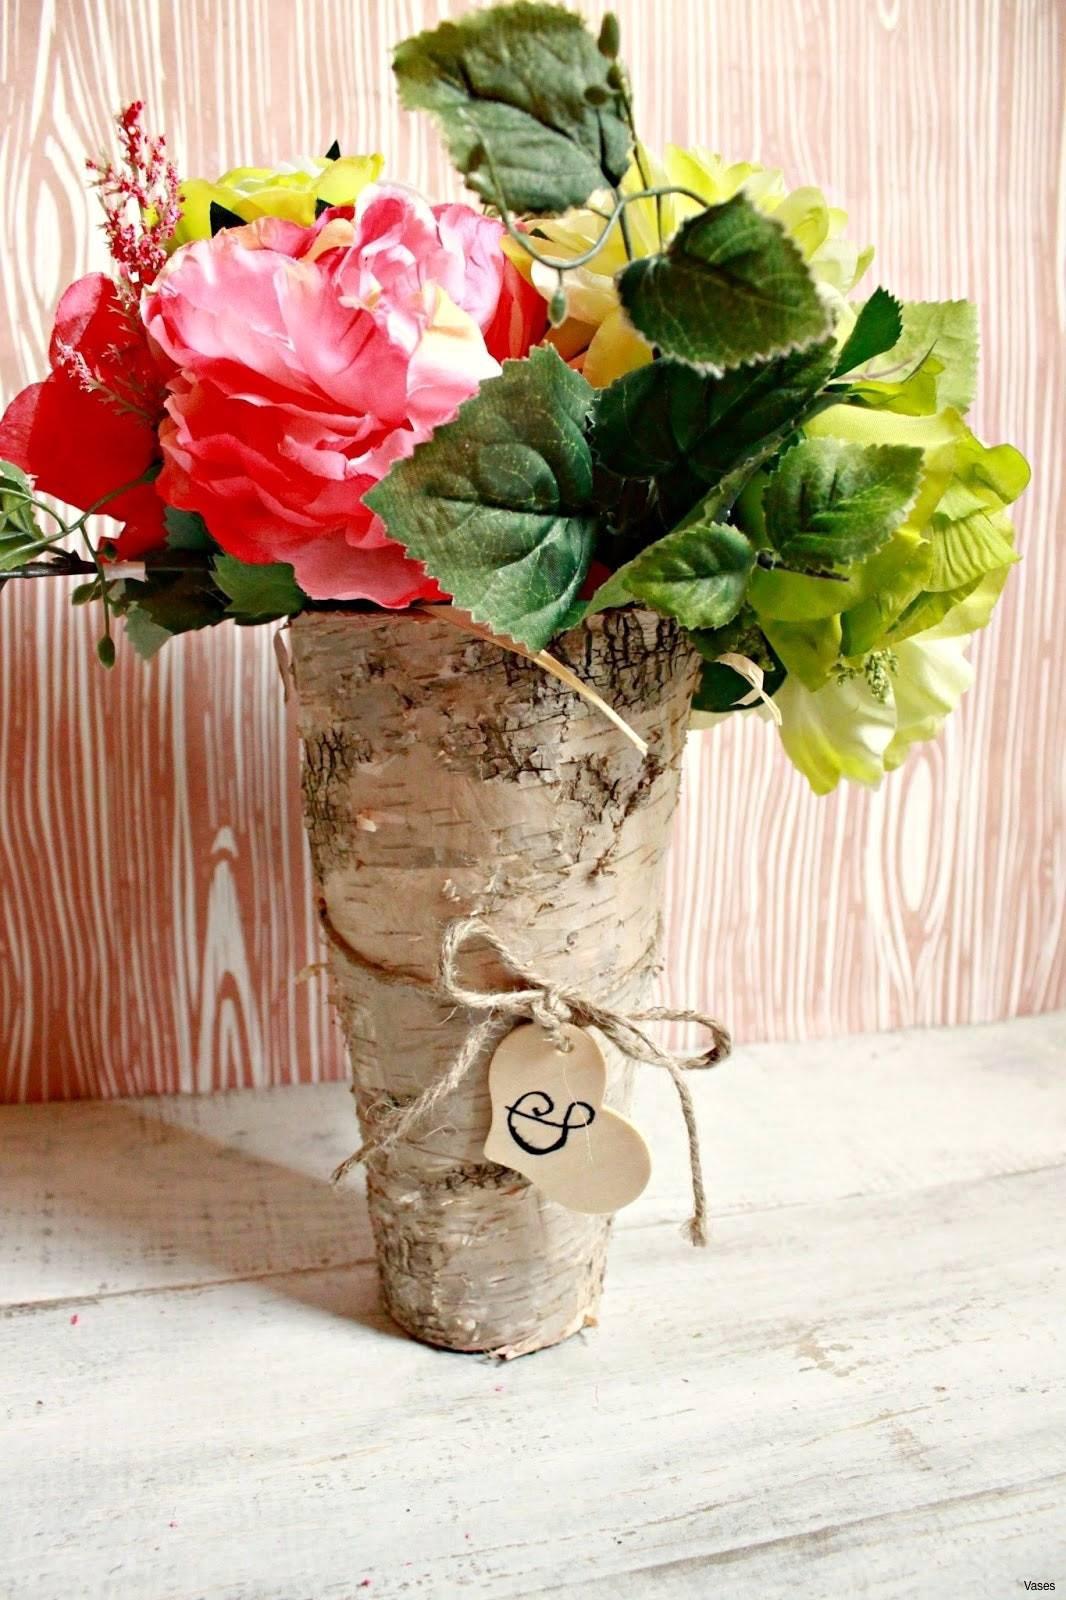 retro vases for sale of rustic wedding decor diy beautiful flowers and decorations for in rustic wedding decor diy beautiful flowers and decorations for weddings h vases diy wood vase i